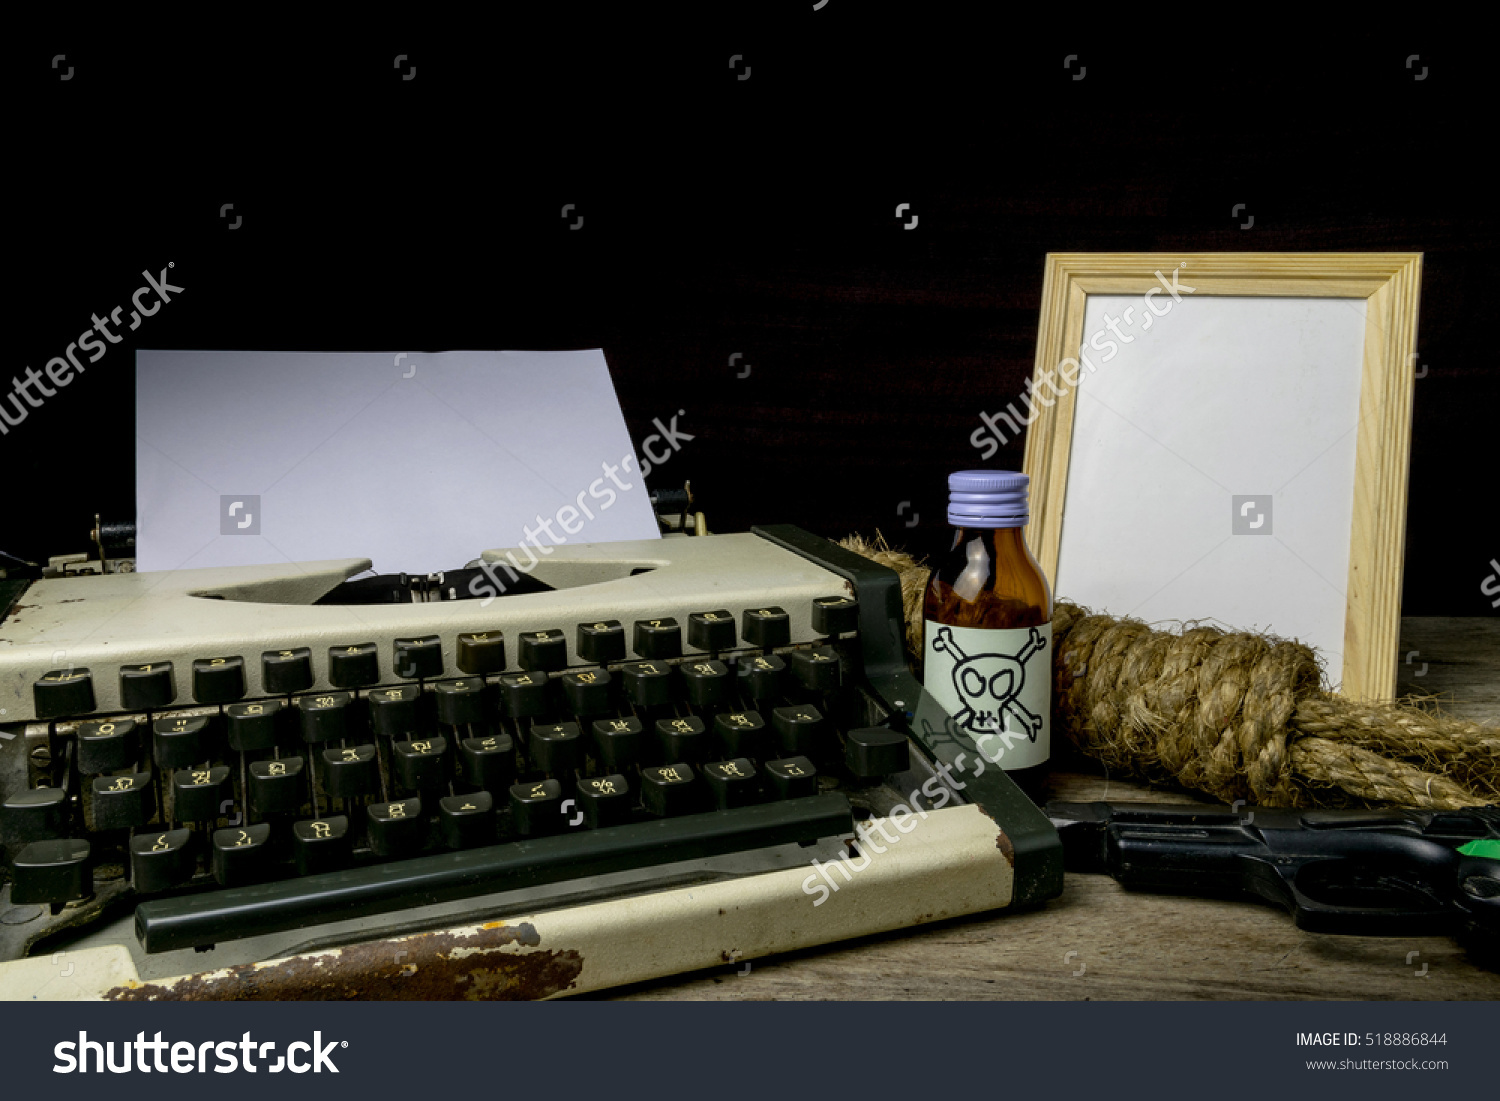 stock-photo-typewriter-with-paper-page-and-poison-and-gun-concept-writer-romance-suspense-518886844